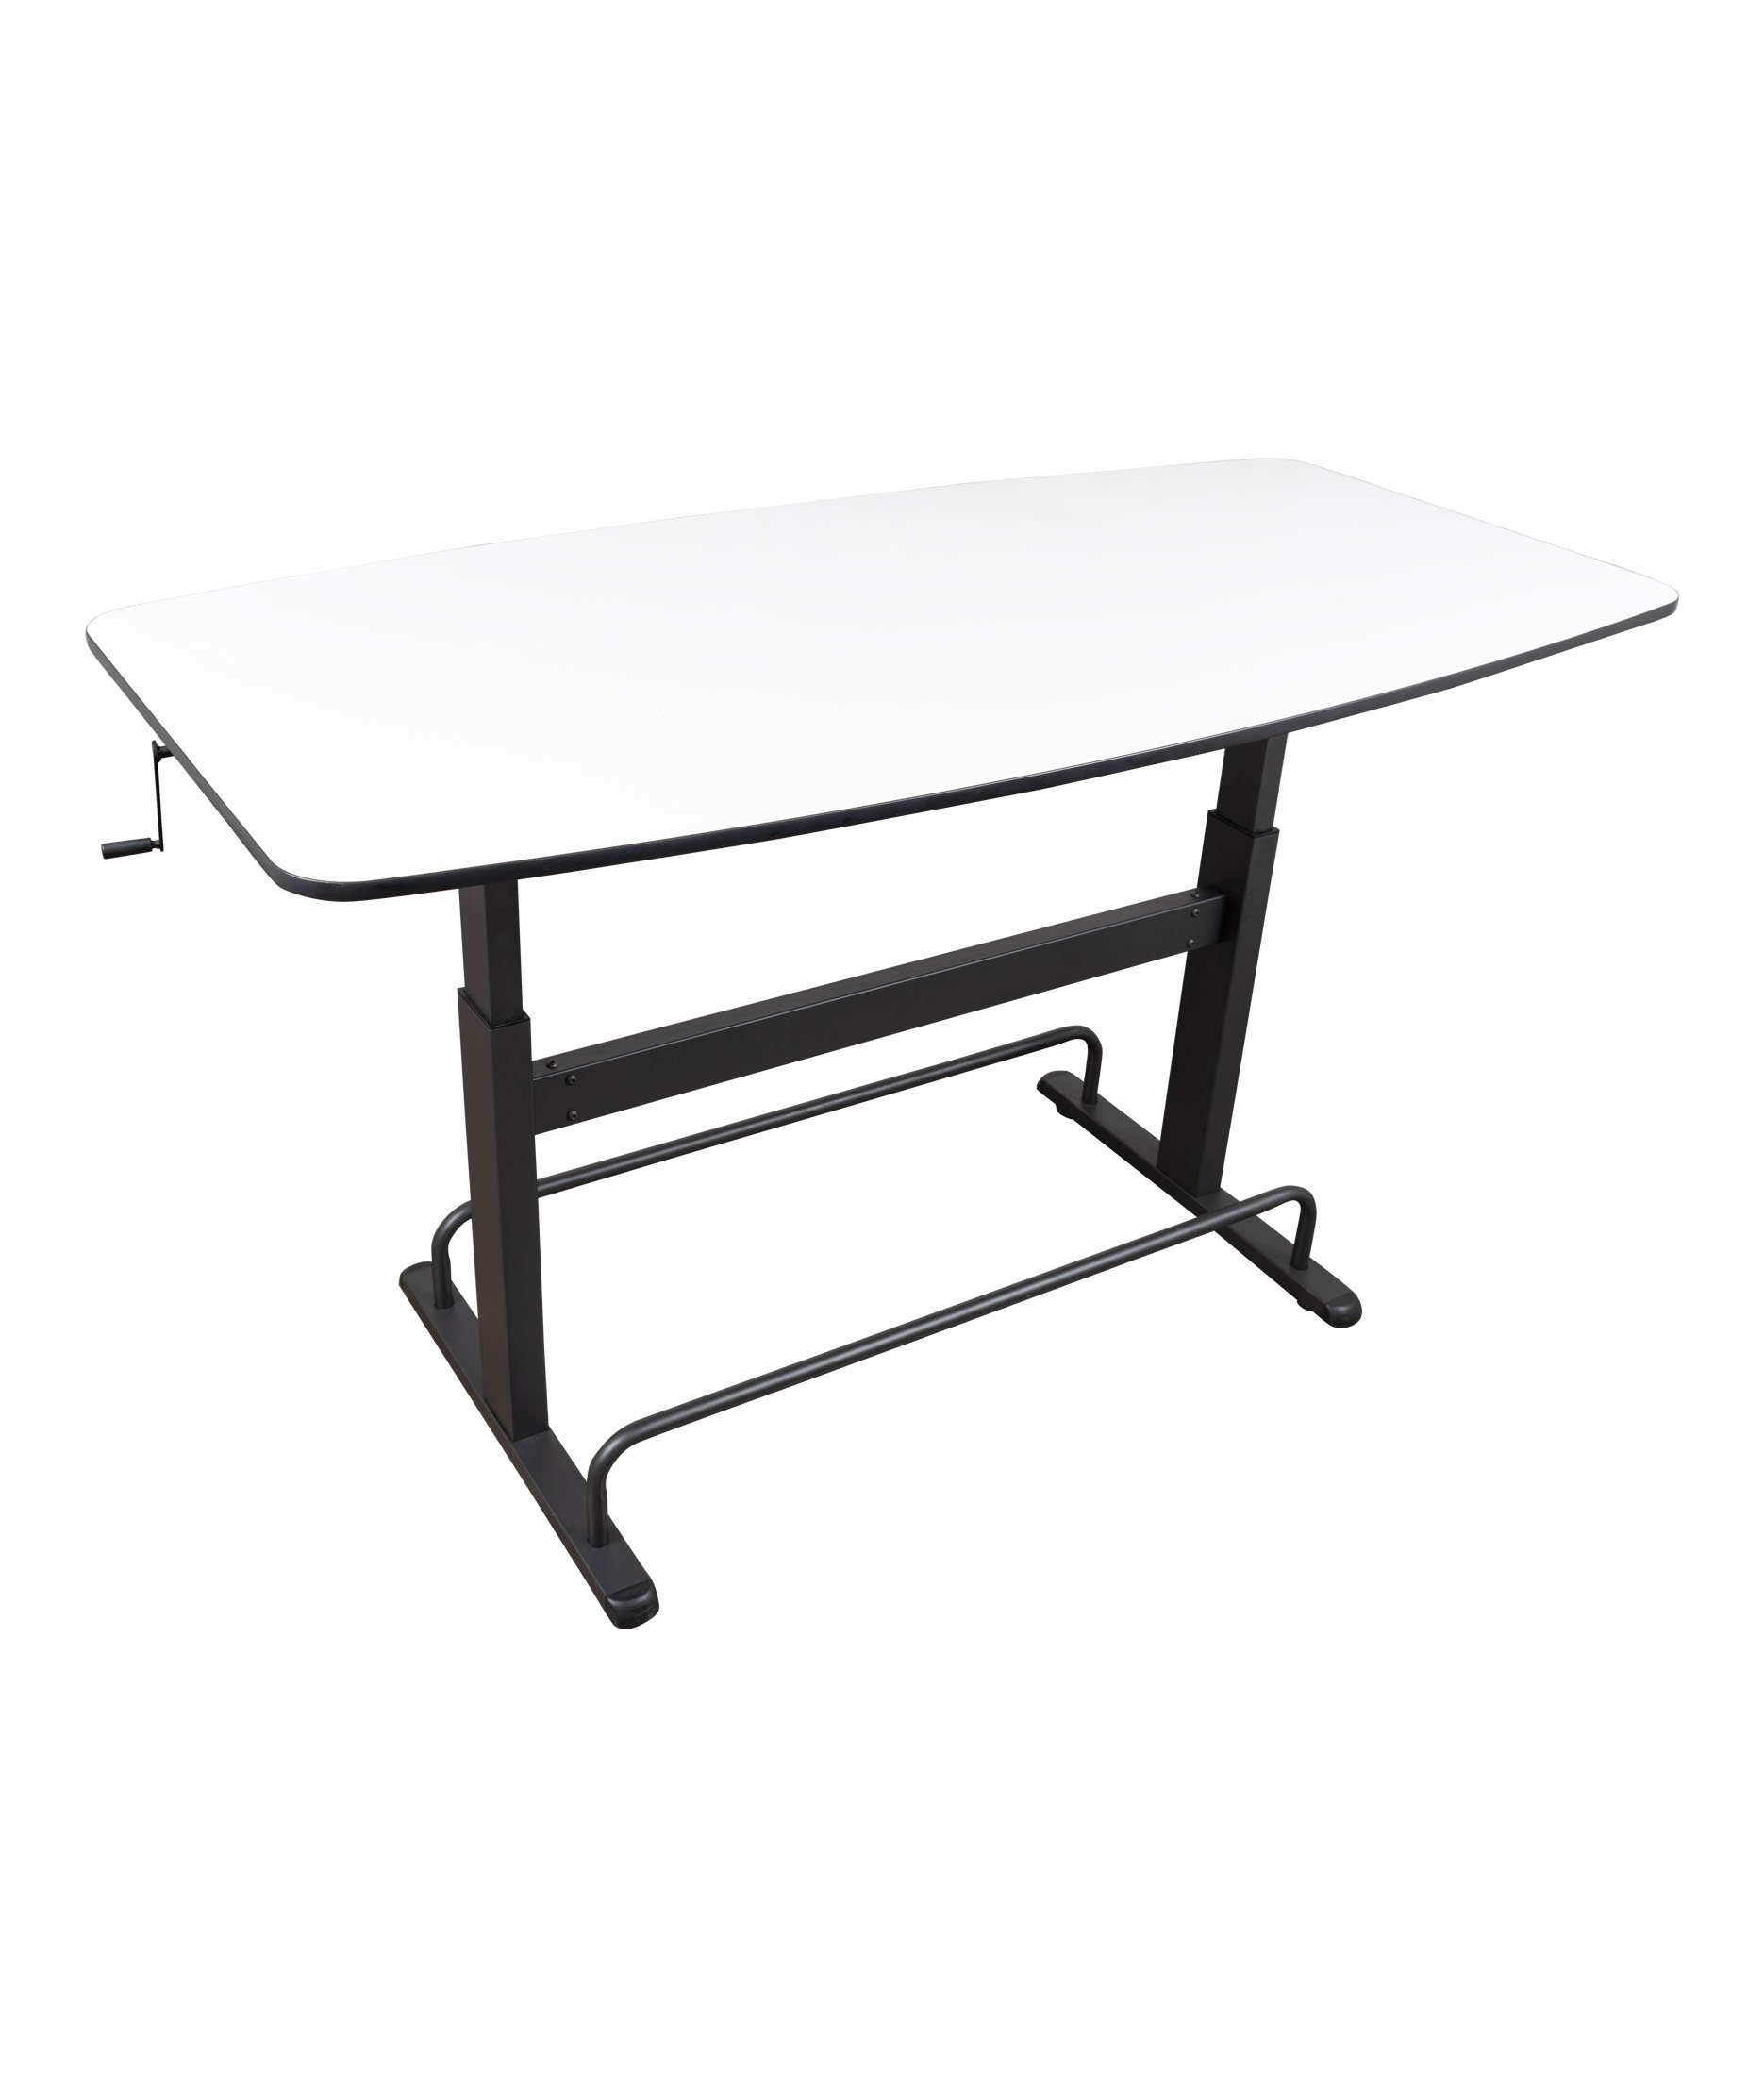 Height Adjustable Standing Conference Table | Meeting Table | Collaboration Table (72'') (Crank, Charcoal Frame/Whiteboard Top) by Stand Up Desk Store